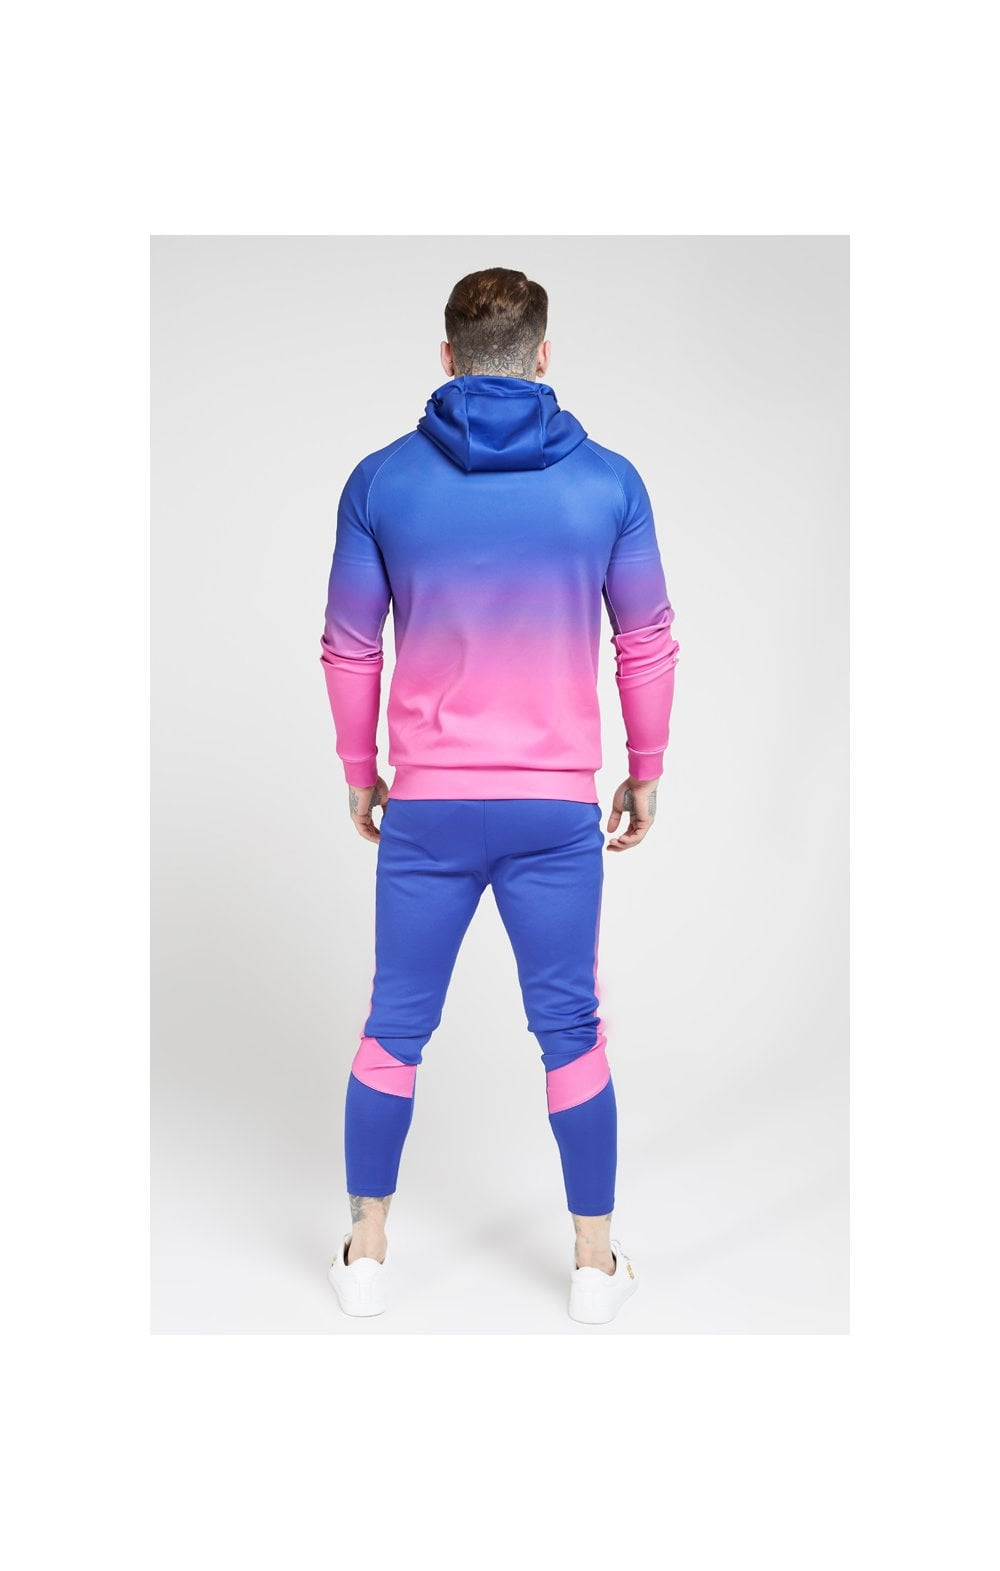 Load image into Gallery viewer, SikSilk Vapour Fade Overhead Hoodie - Neon Blue (4)